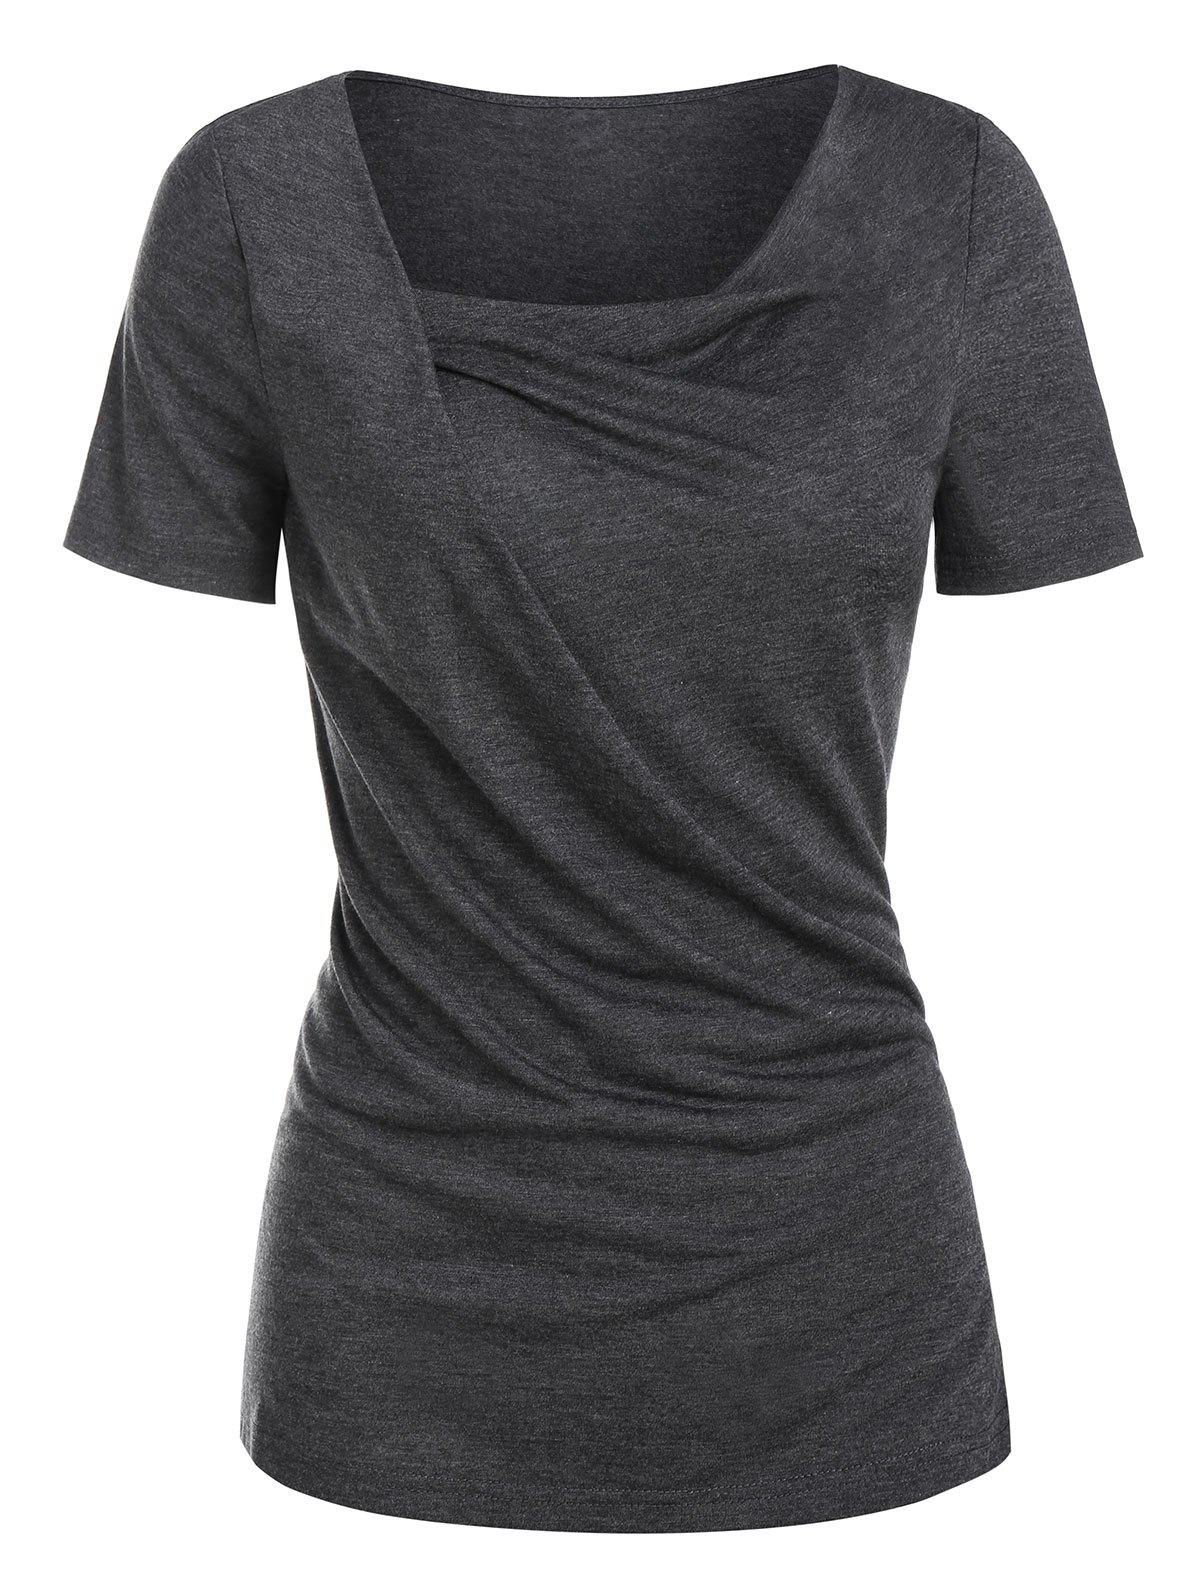 Latest Cowl Neck Draped Heathered T-shirt